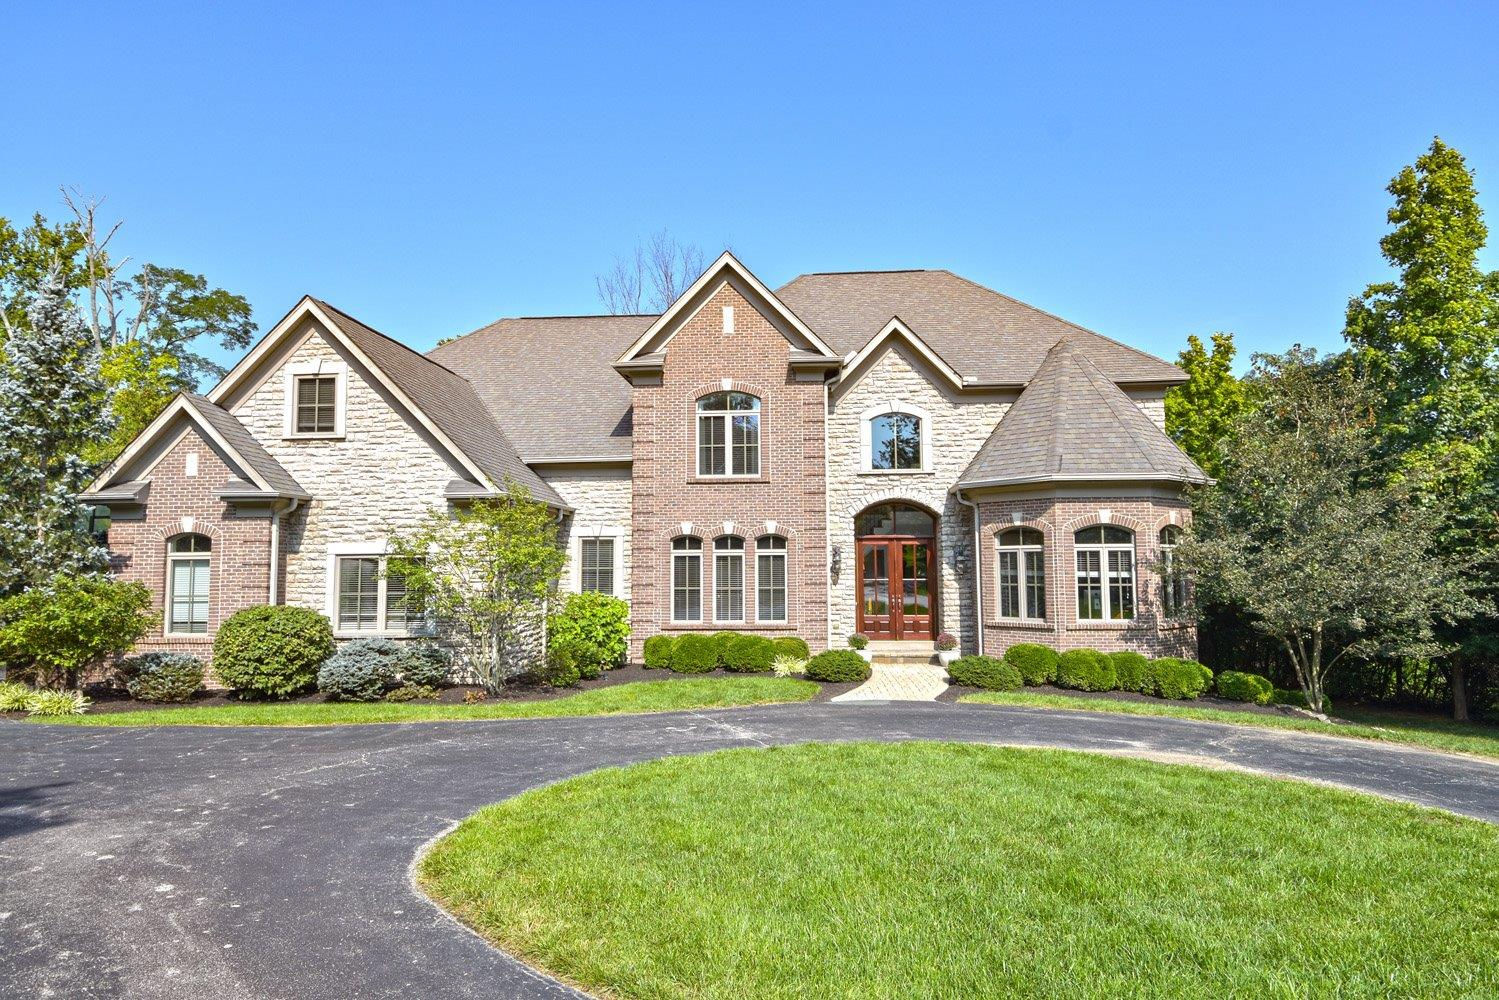 8587 Concord Hills Cir Sycamore Twp OH